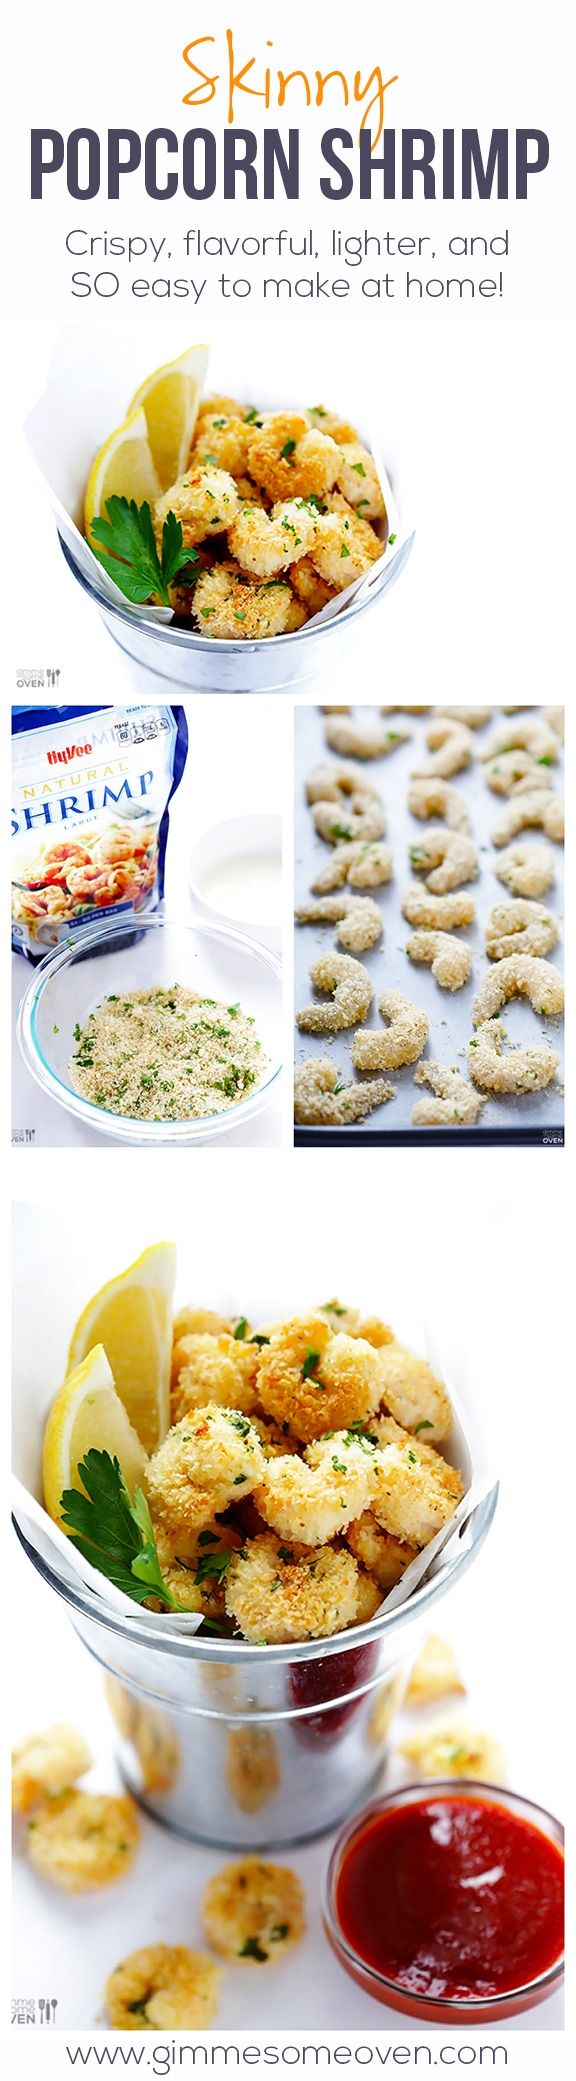 Classic popcorn shrimp is lightened up, but still flavorful, crispy, and so delicious homemade! gimmesomeoven.com